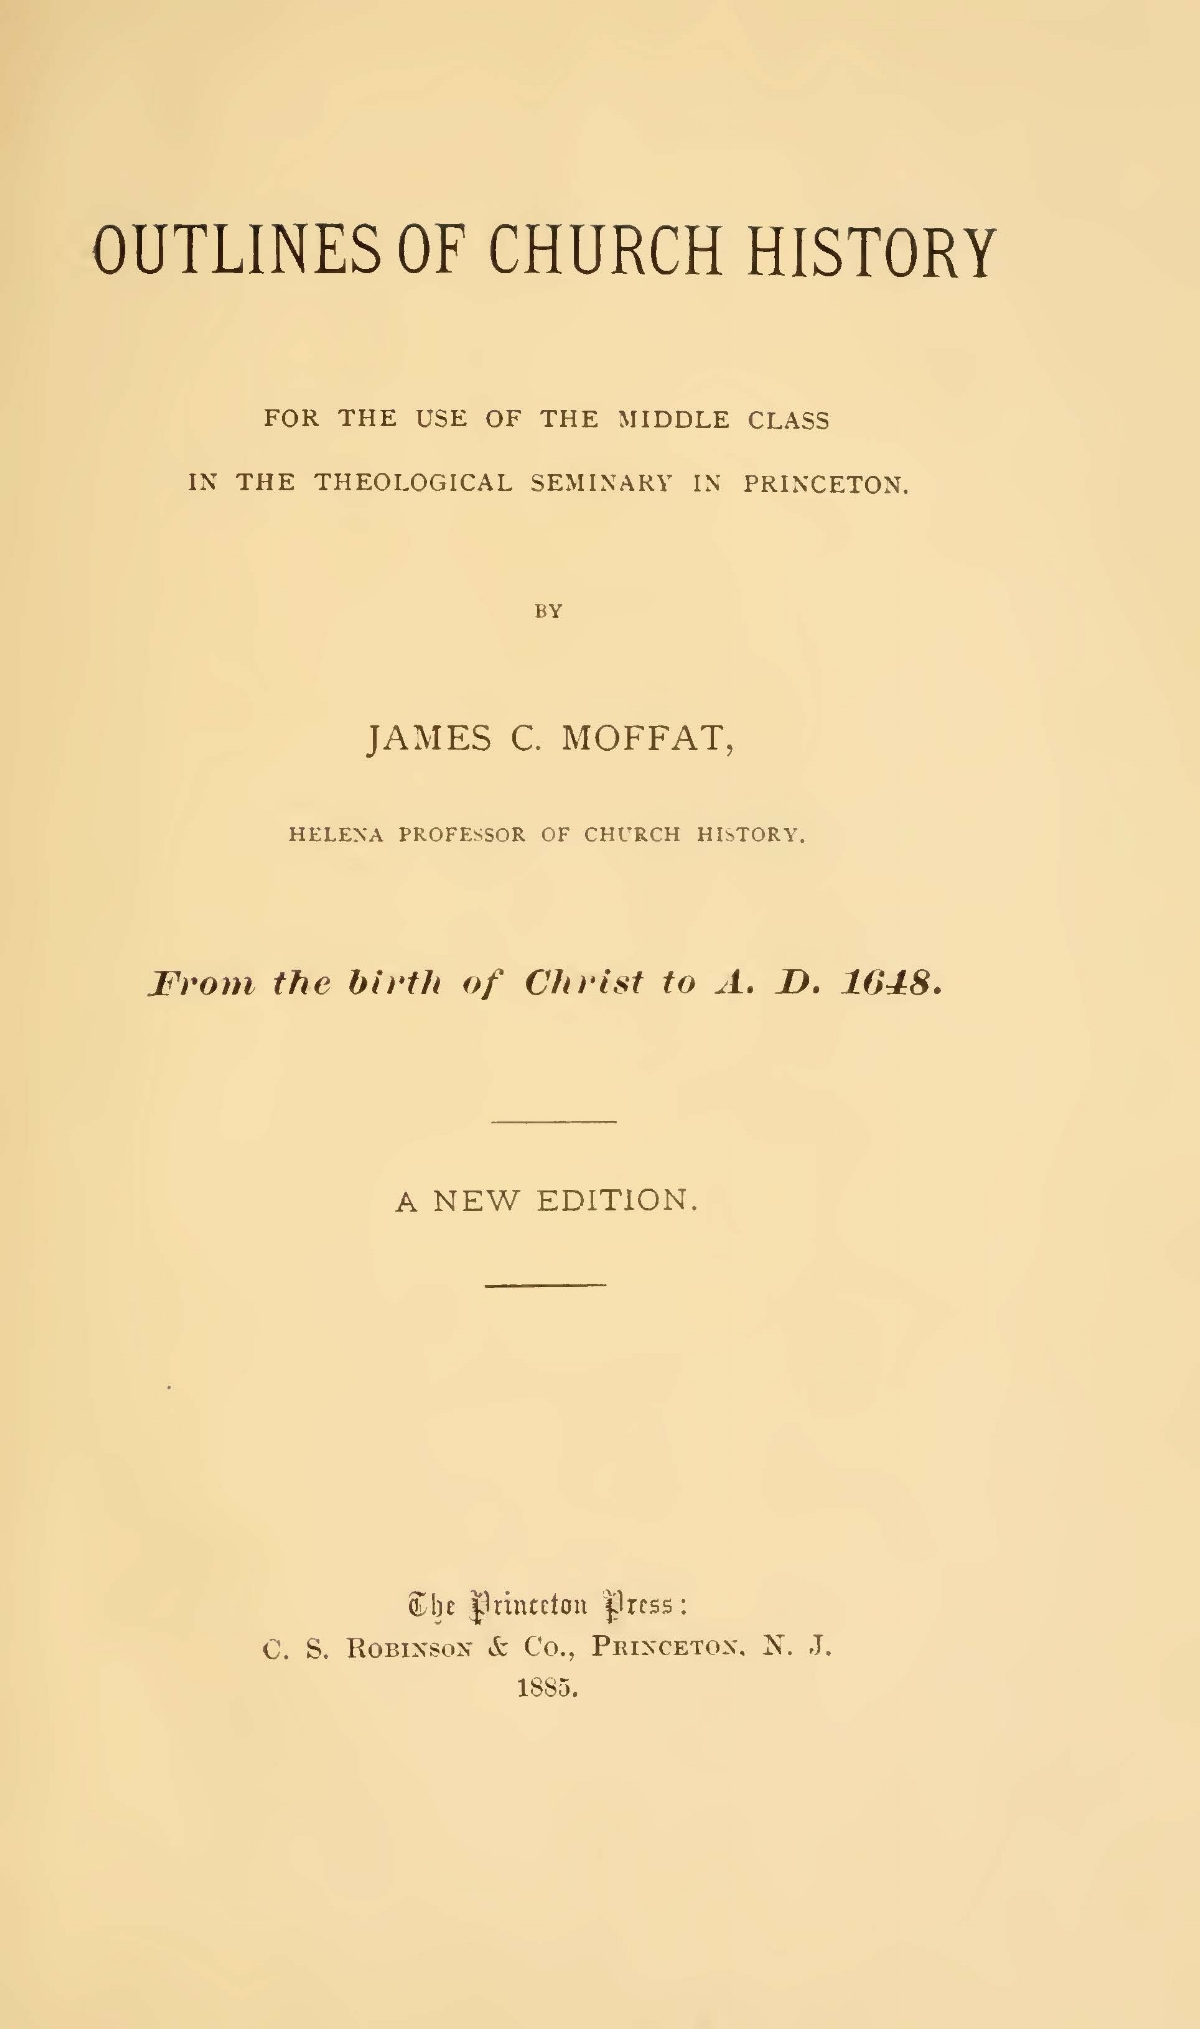 Moffat, James Clement, Outlines of Church History Title Page.jpg